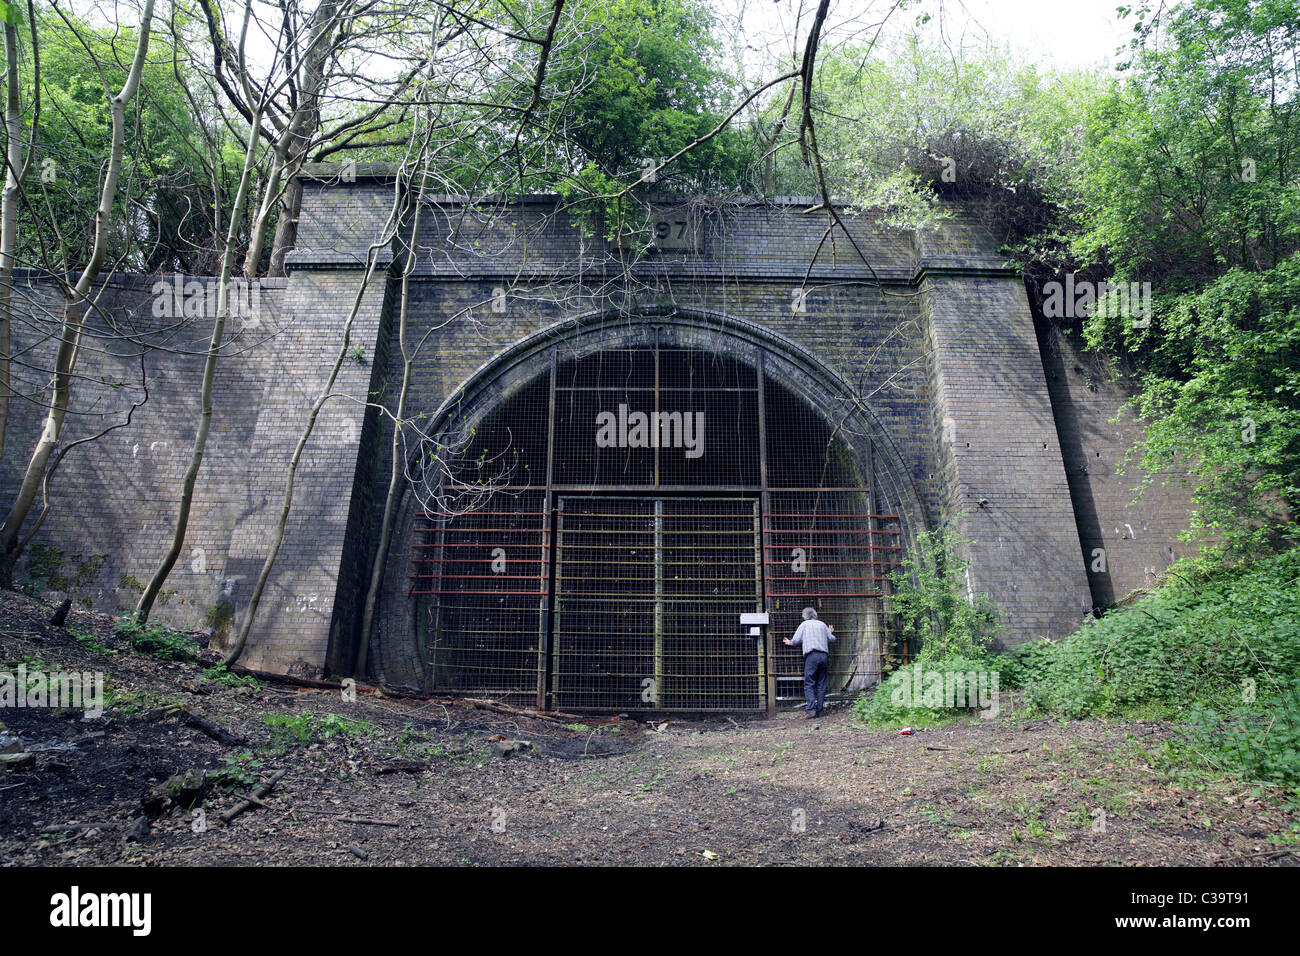 The south portal of the closed Charwelton Tunnel on the disused former Great Central Railway line near Daventry, - Stock Image